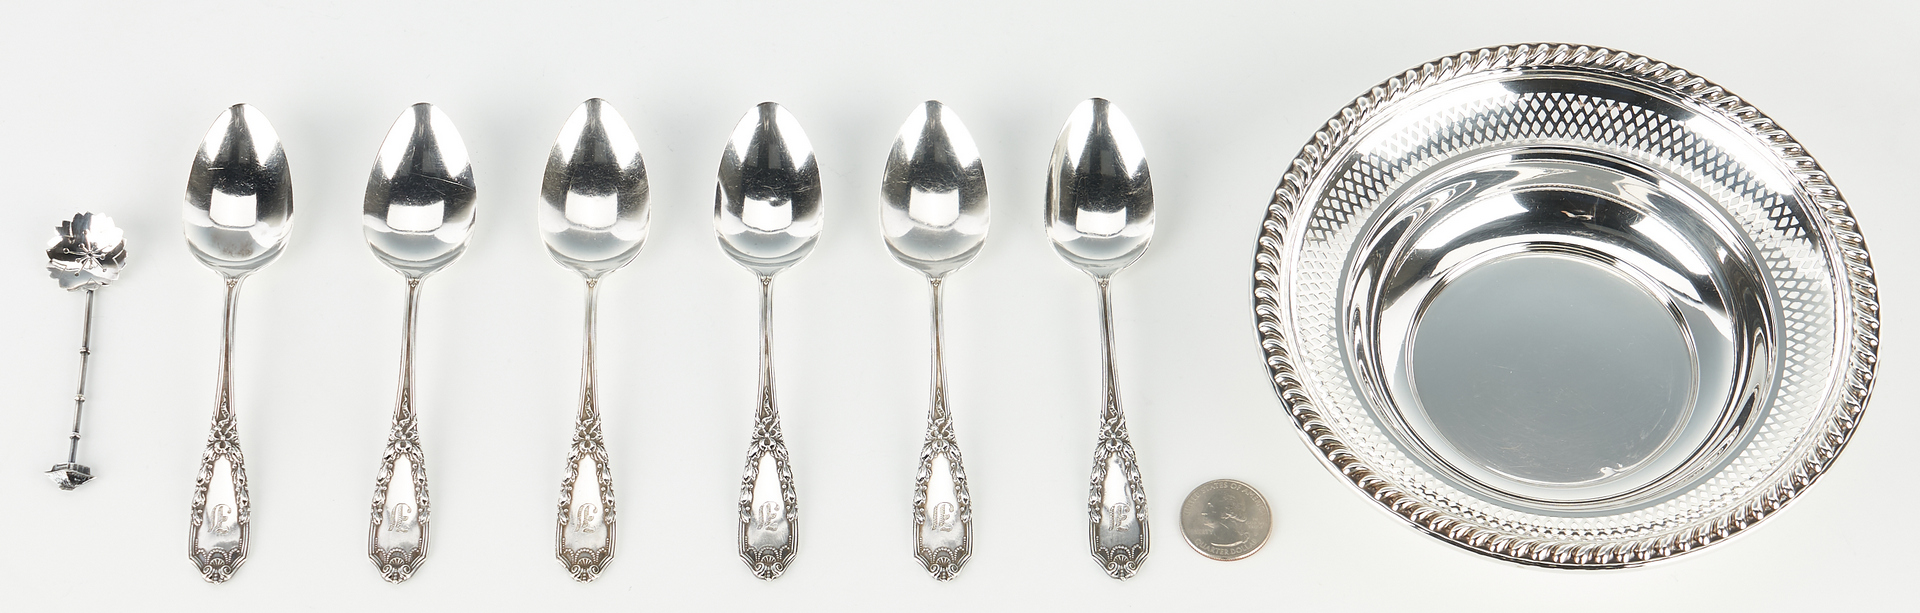 Lot 1233: 12 pcs. Assorted Sterling Silver, incl. Goblets